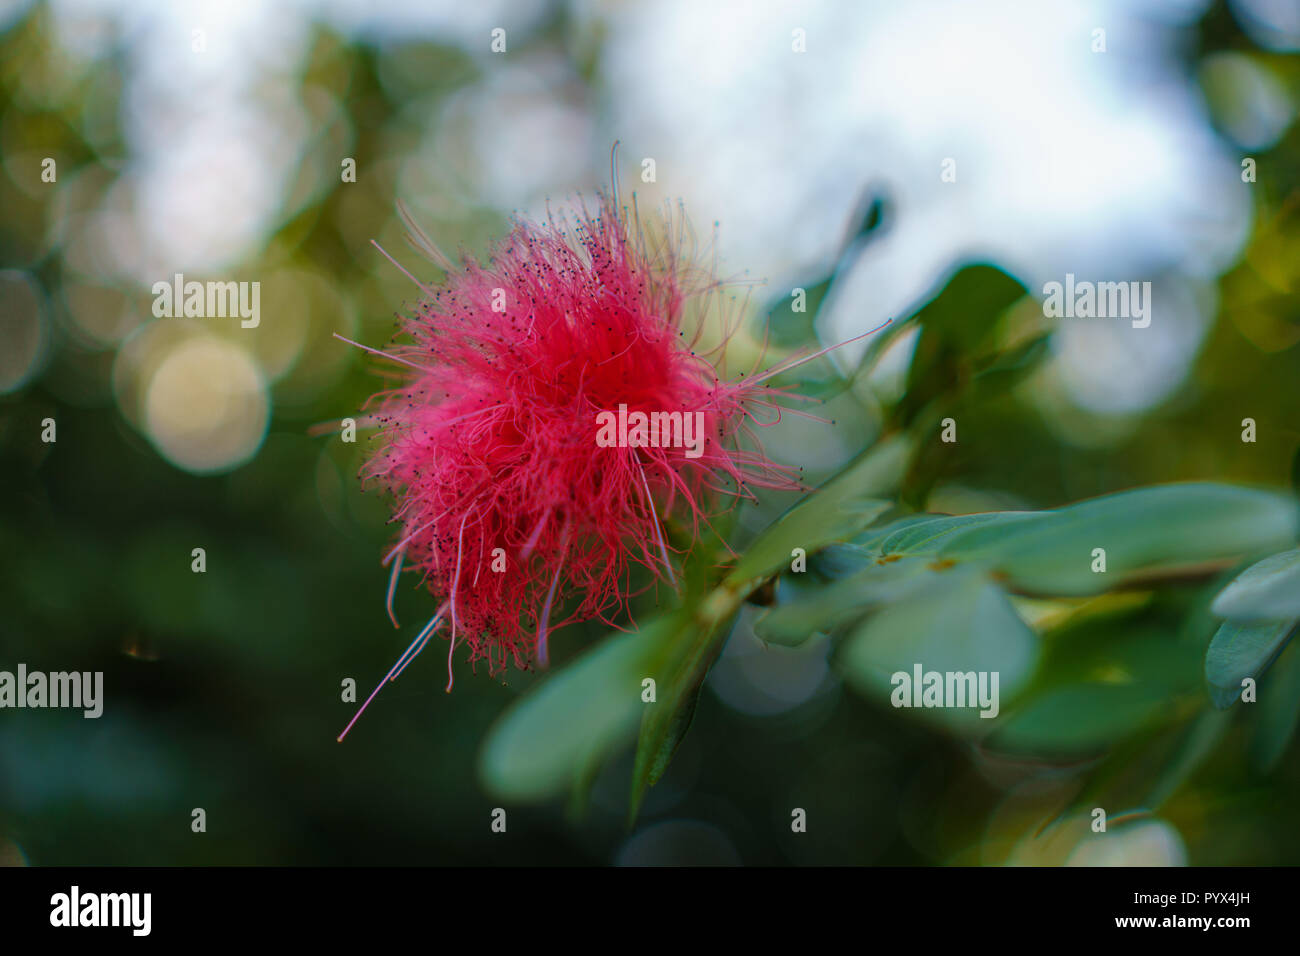 Pink Fluffy Mimosa Flower Blooming On Its Tree In The Garden Of